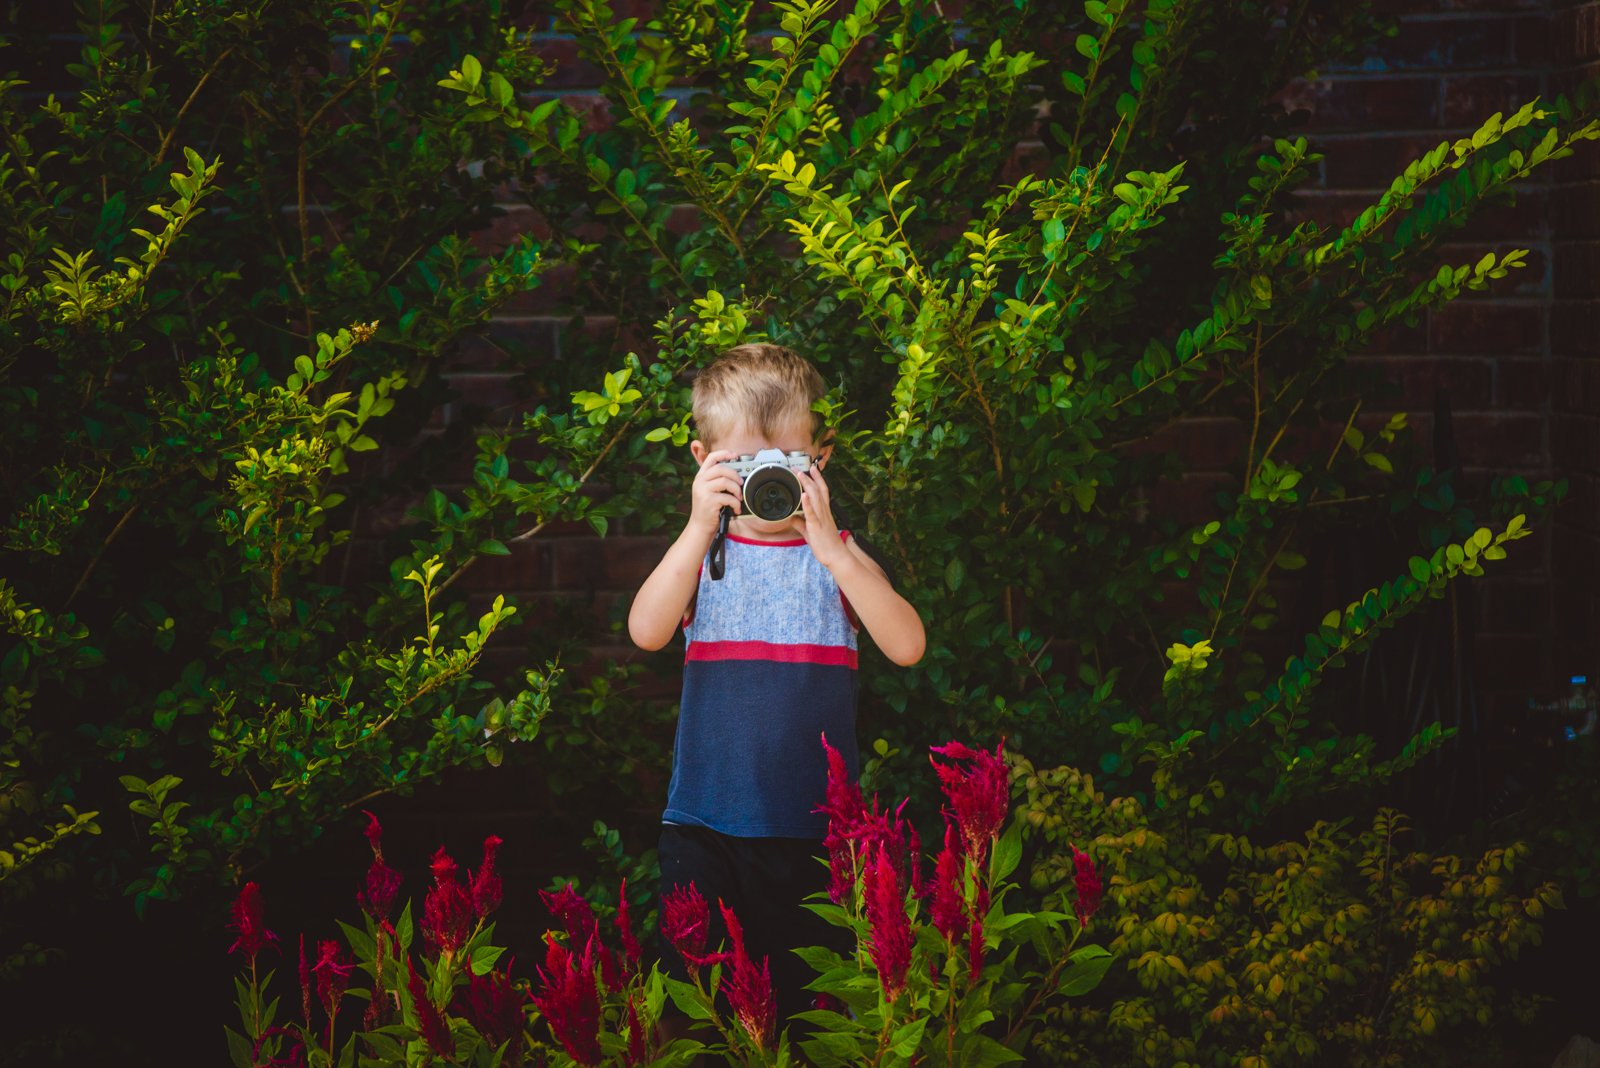 boy-taking-pictures-in-flowers-and-greenery-by-natalie-greenroyd